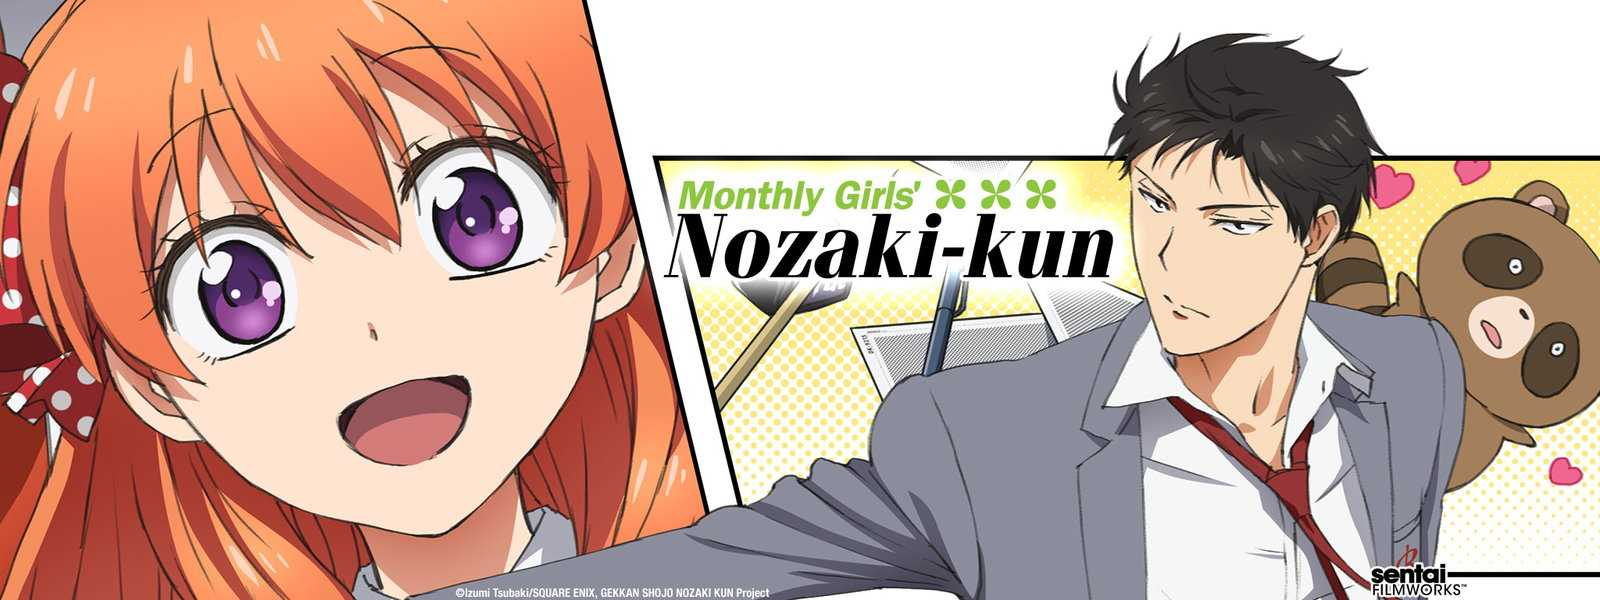 Sentai Filmworks Previews Monthly Girls' Nozaki Kun English Dub | Monthly Girls' Nozaki kun